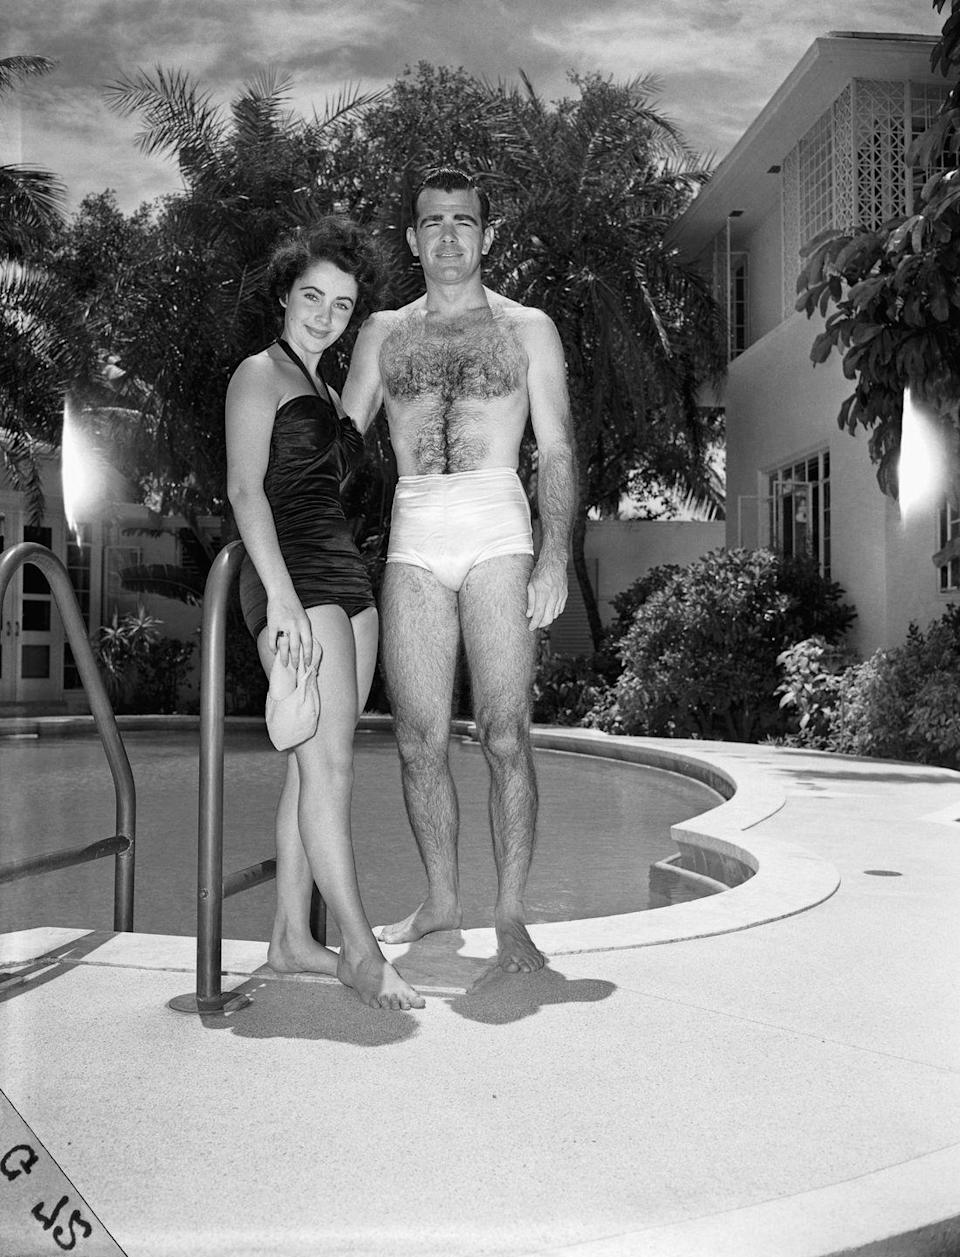 <p>A young Elizabeth Taylor and her then-fiancé William D. Pawley Jr. pose poolside at Pawley's family home in Miami, circa 1949. </p>